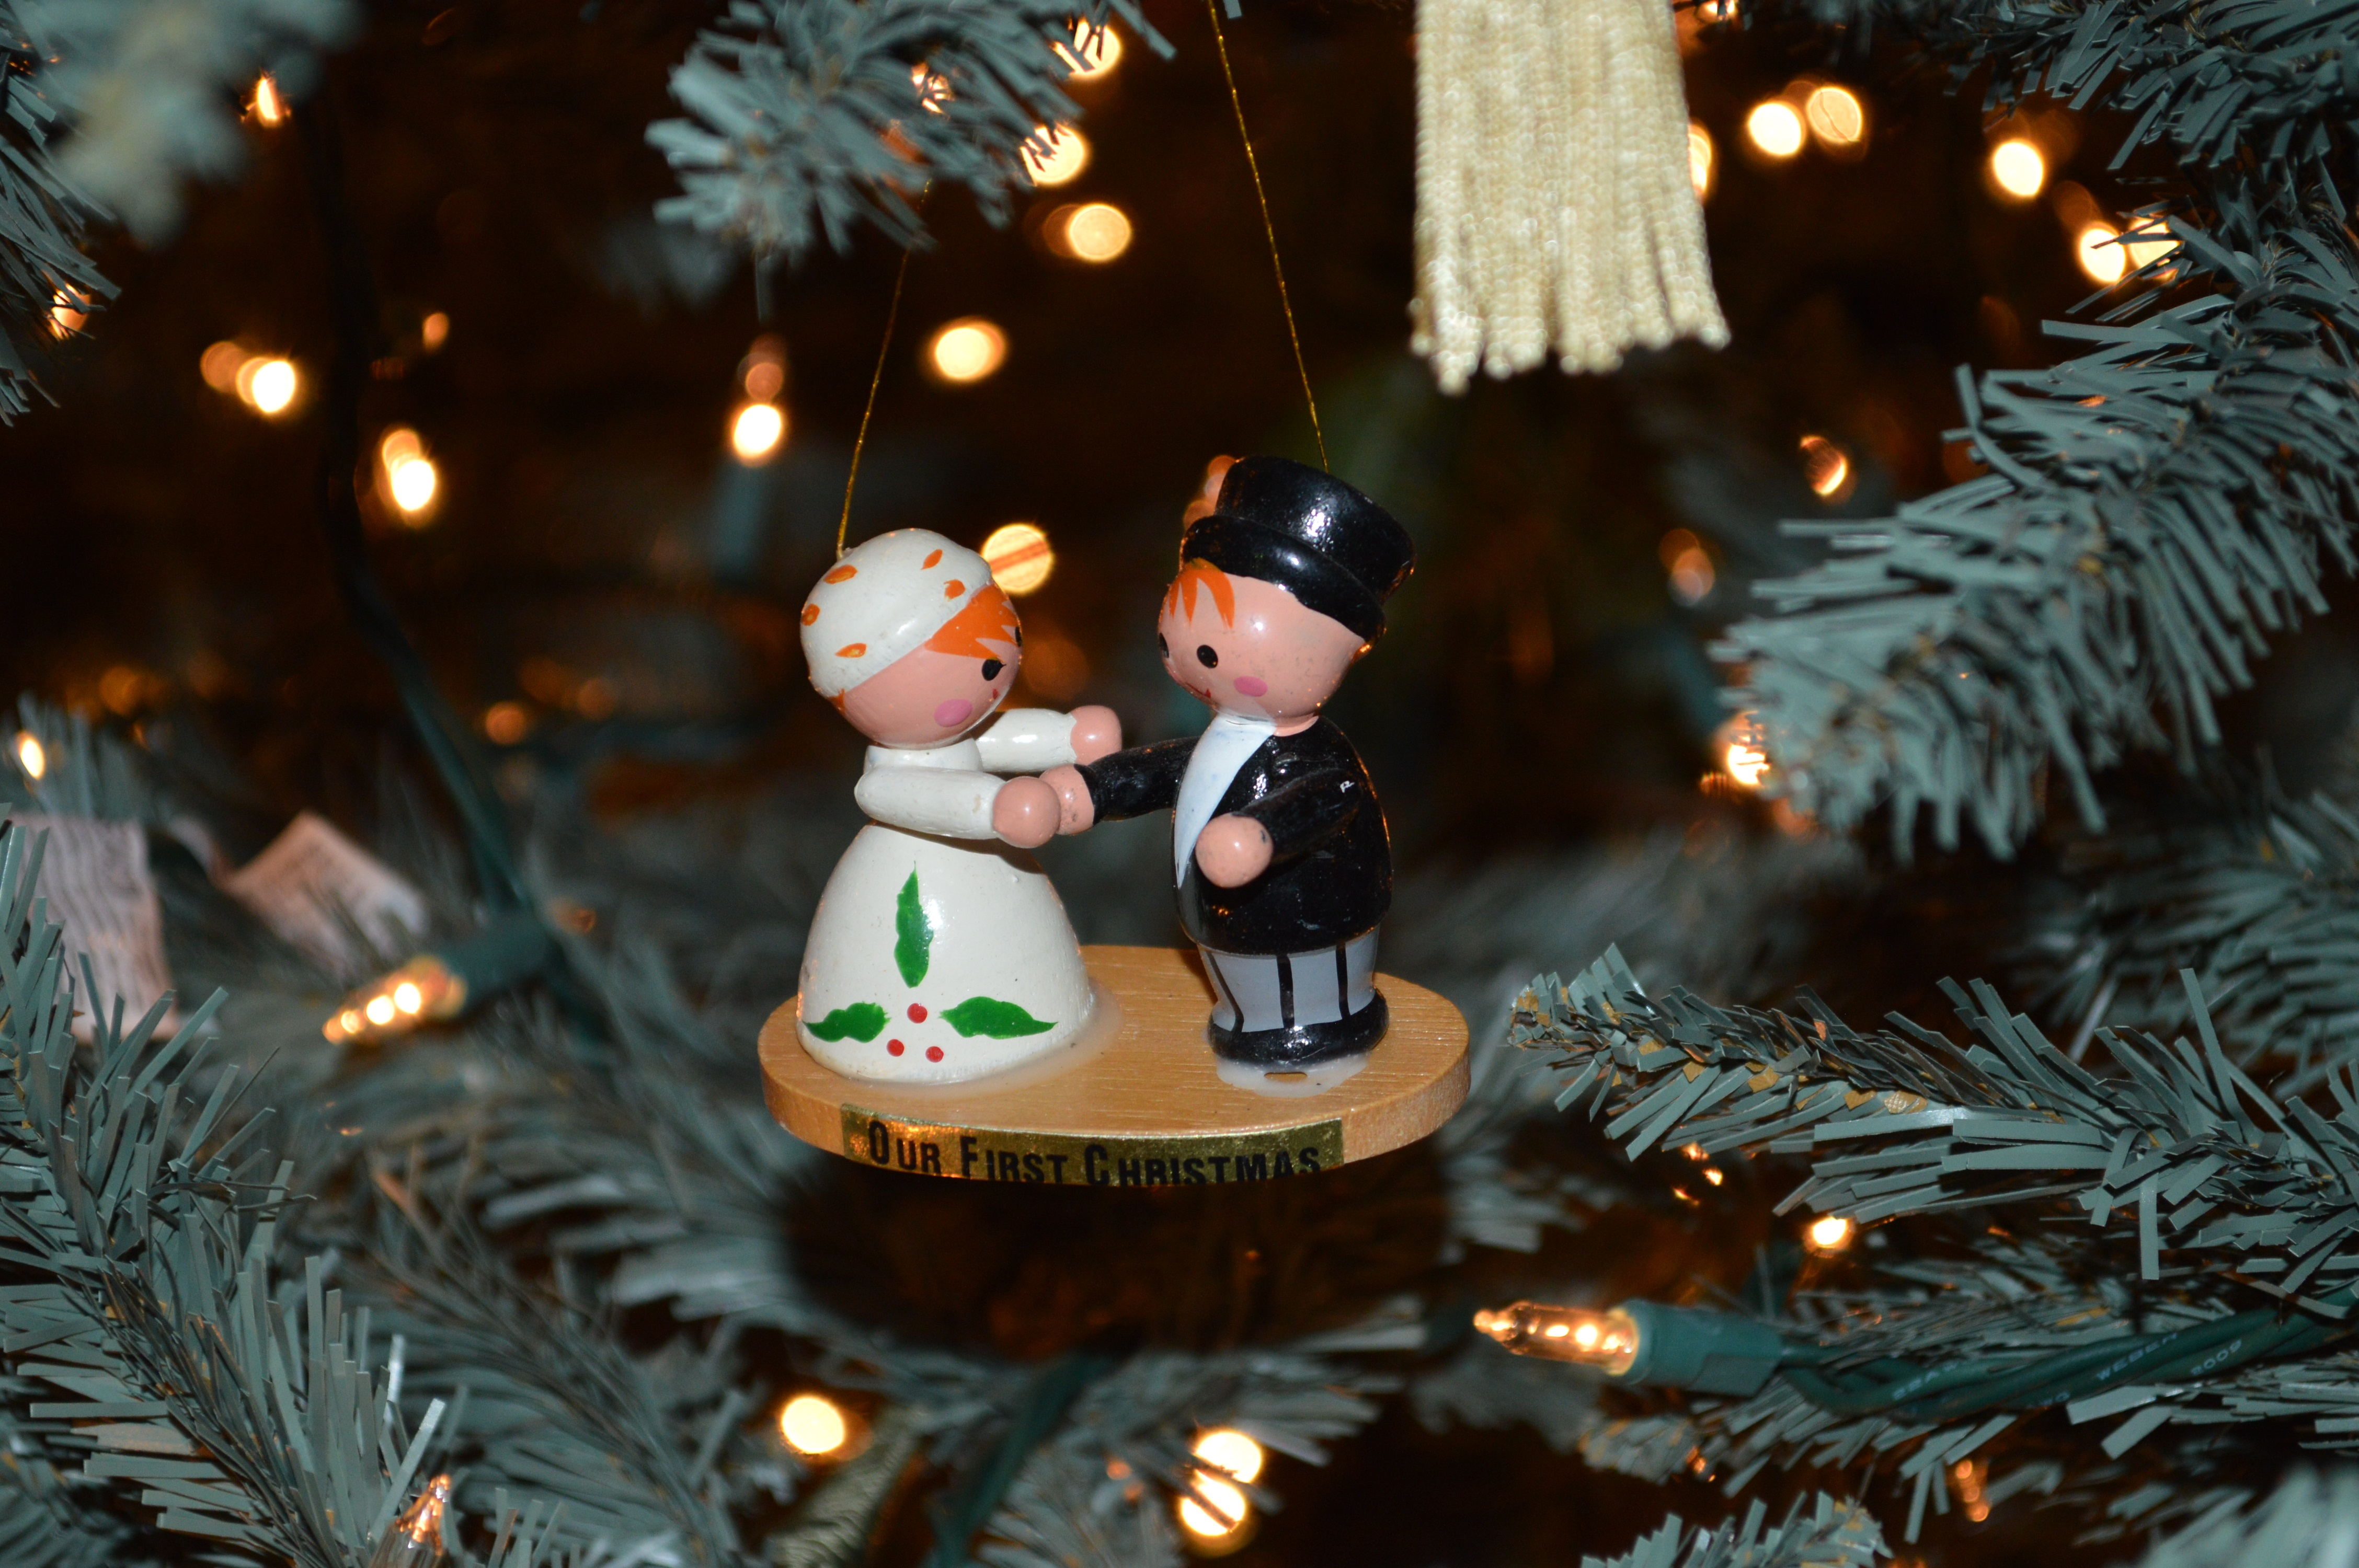 Hummel christmas tree ornaments - The Love Birds And Heart I Purchased For Us In 1985 The Wooden Bride Groom From Grammy On Our First Christmas And The Star Tree Topper For A Very Small